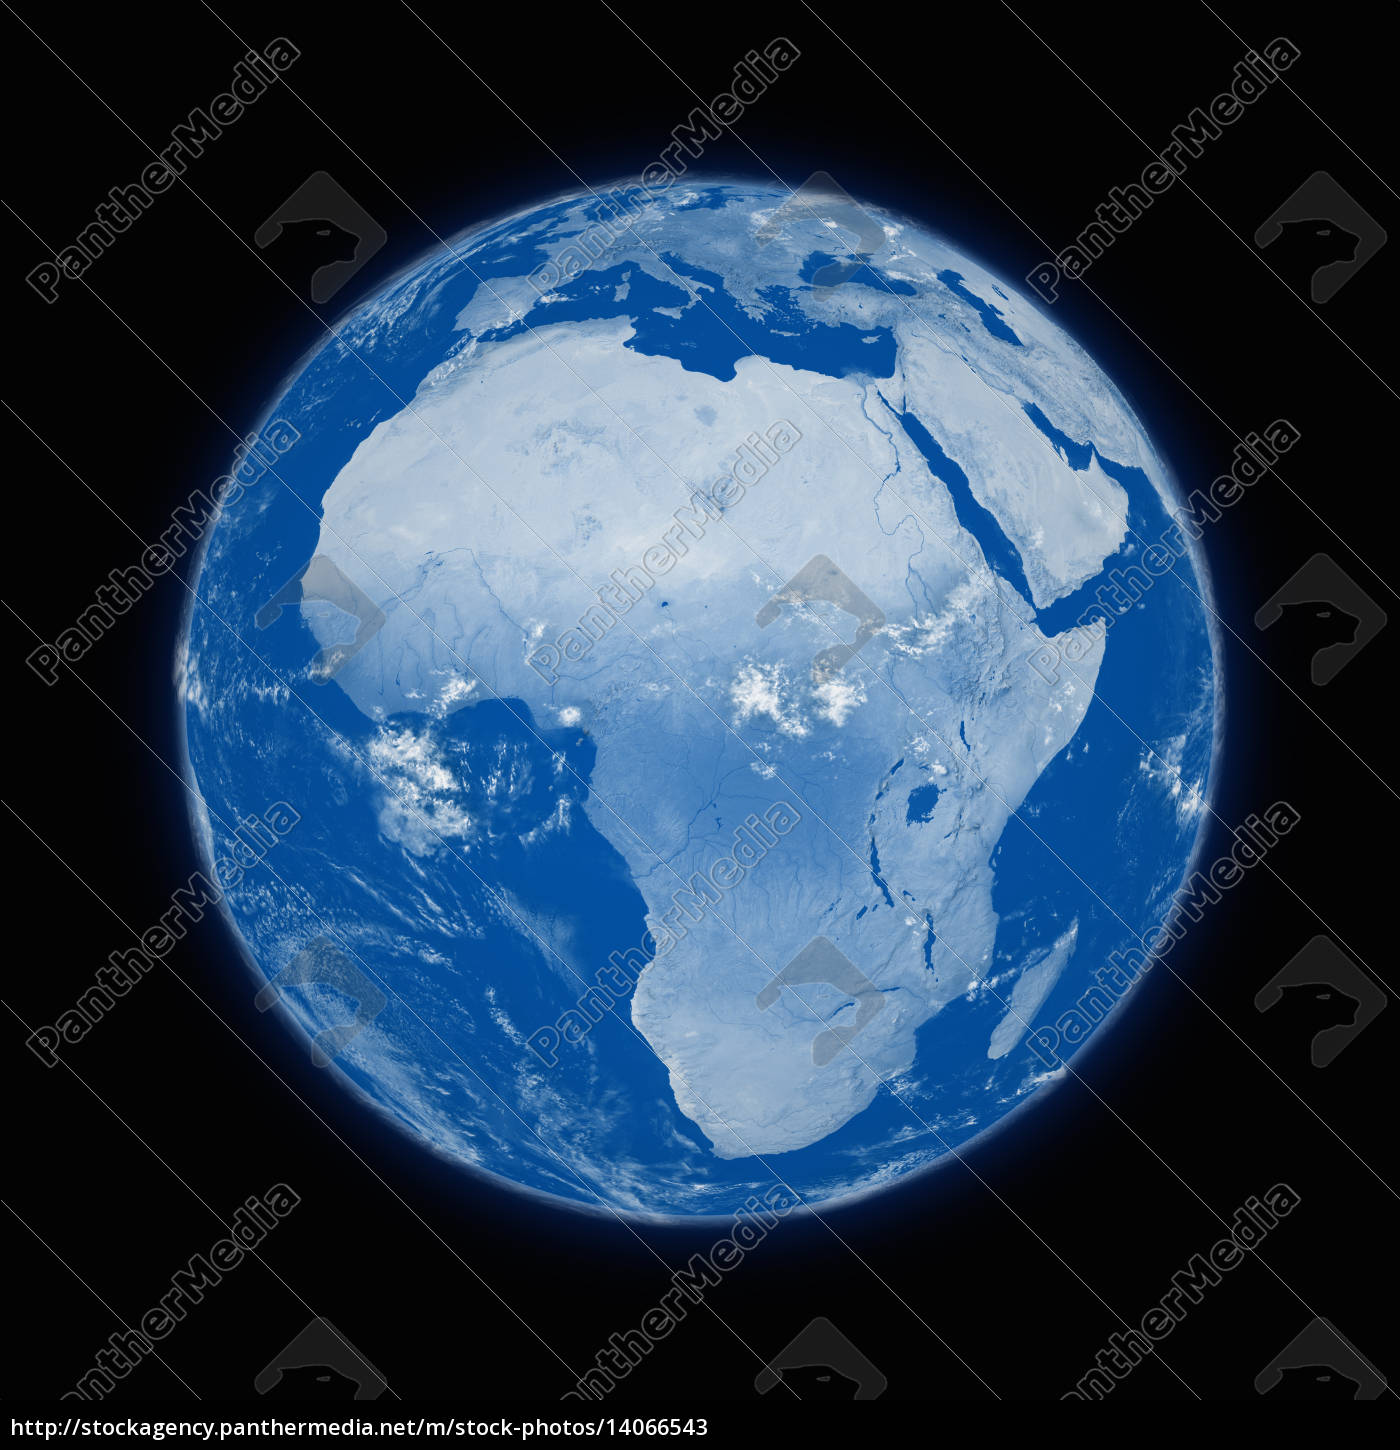 africa, on, planet, earth - 14066543